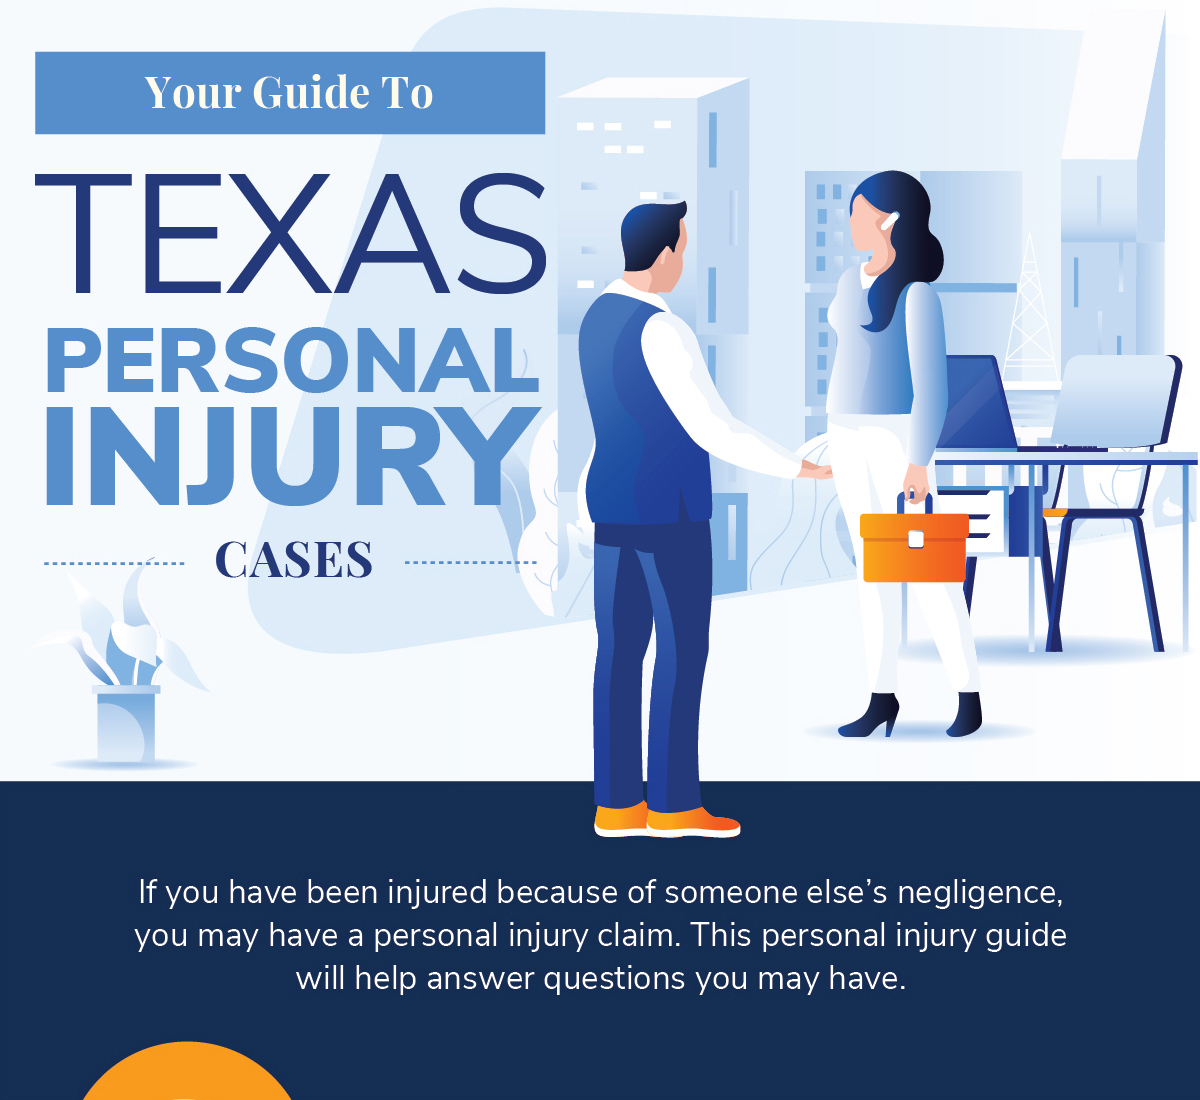 Personal Injury Infographic thumb